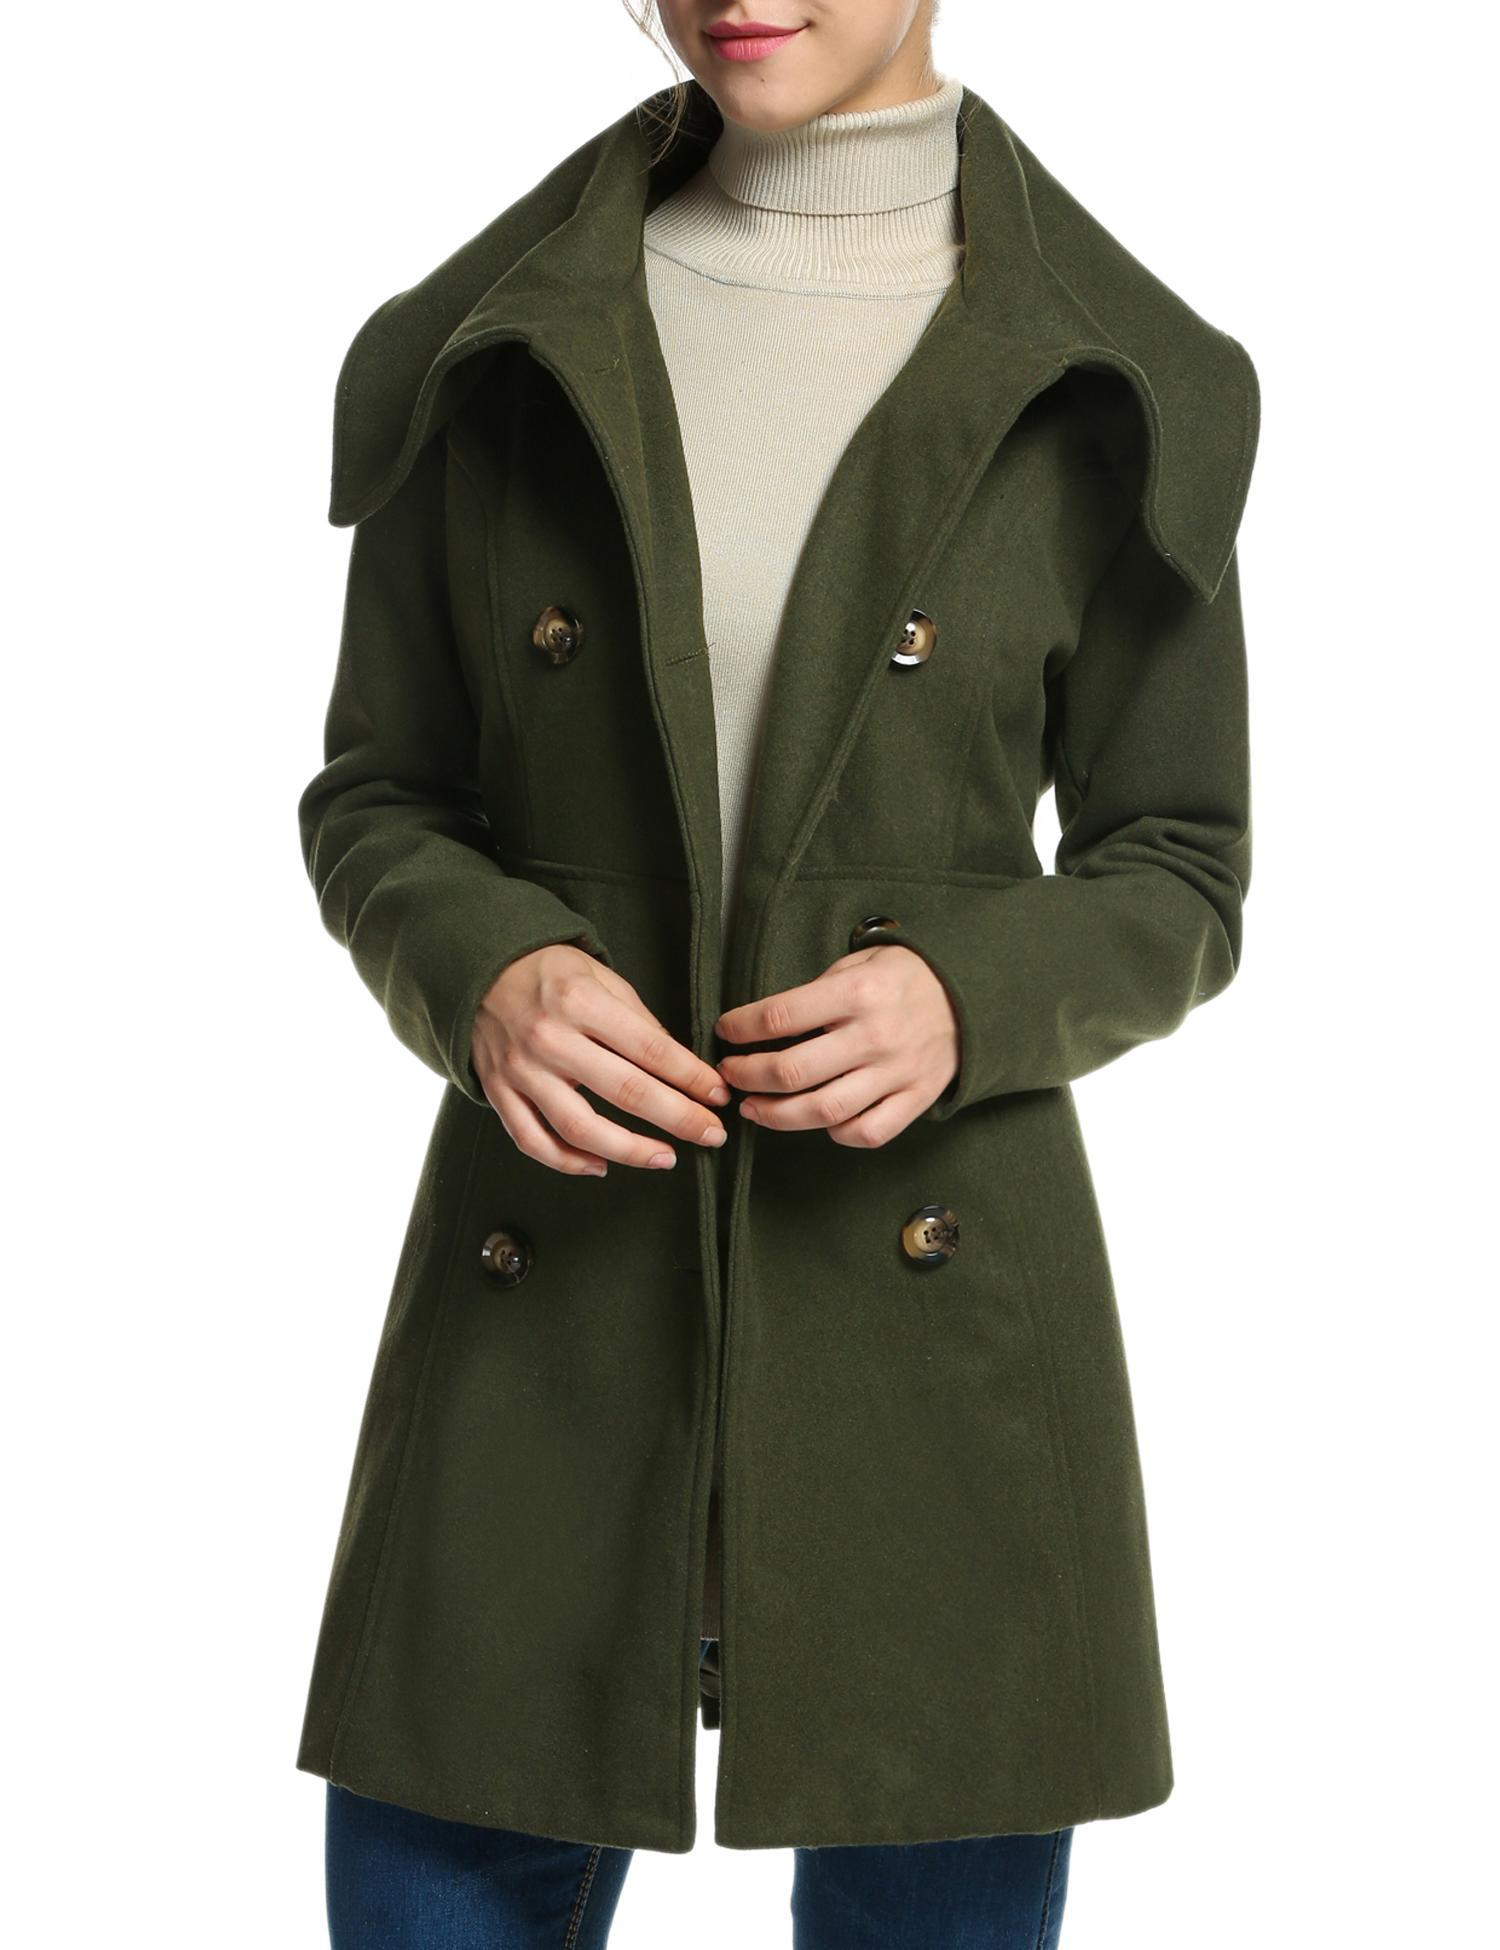 Lady Woman Winter Coat Long Sleeve Notched Lapel Trench Jacket Wool Blend by Womens Wool Coats